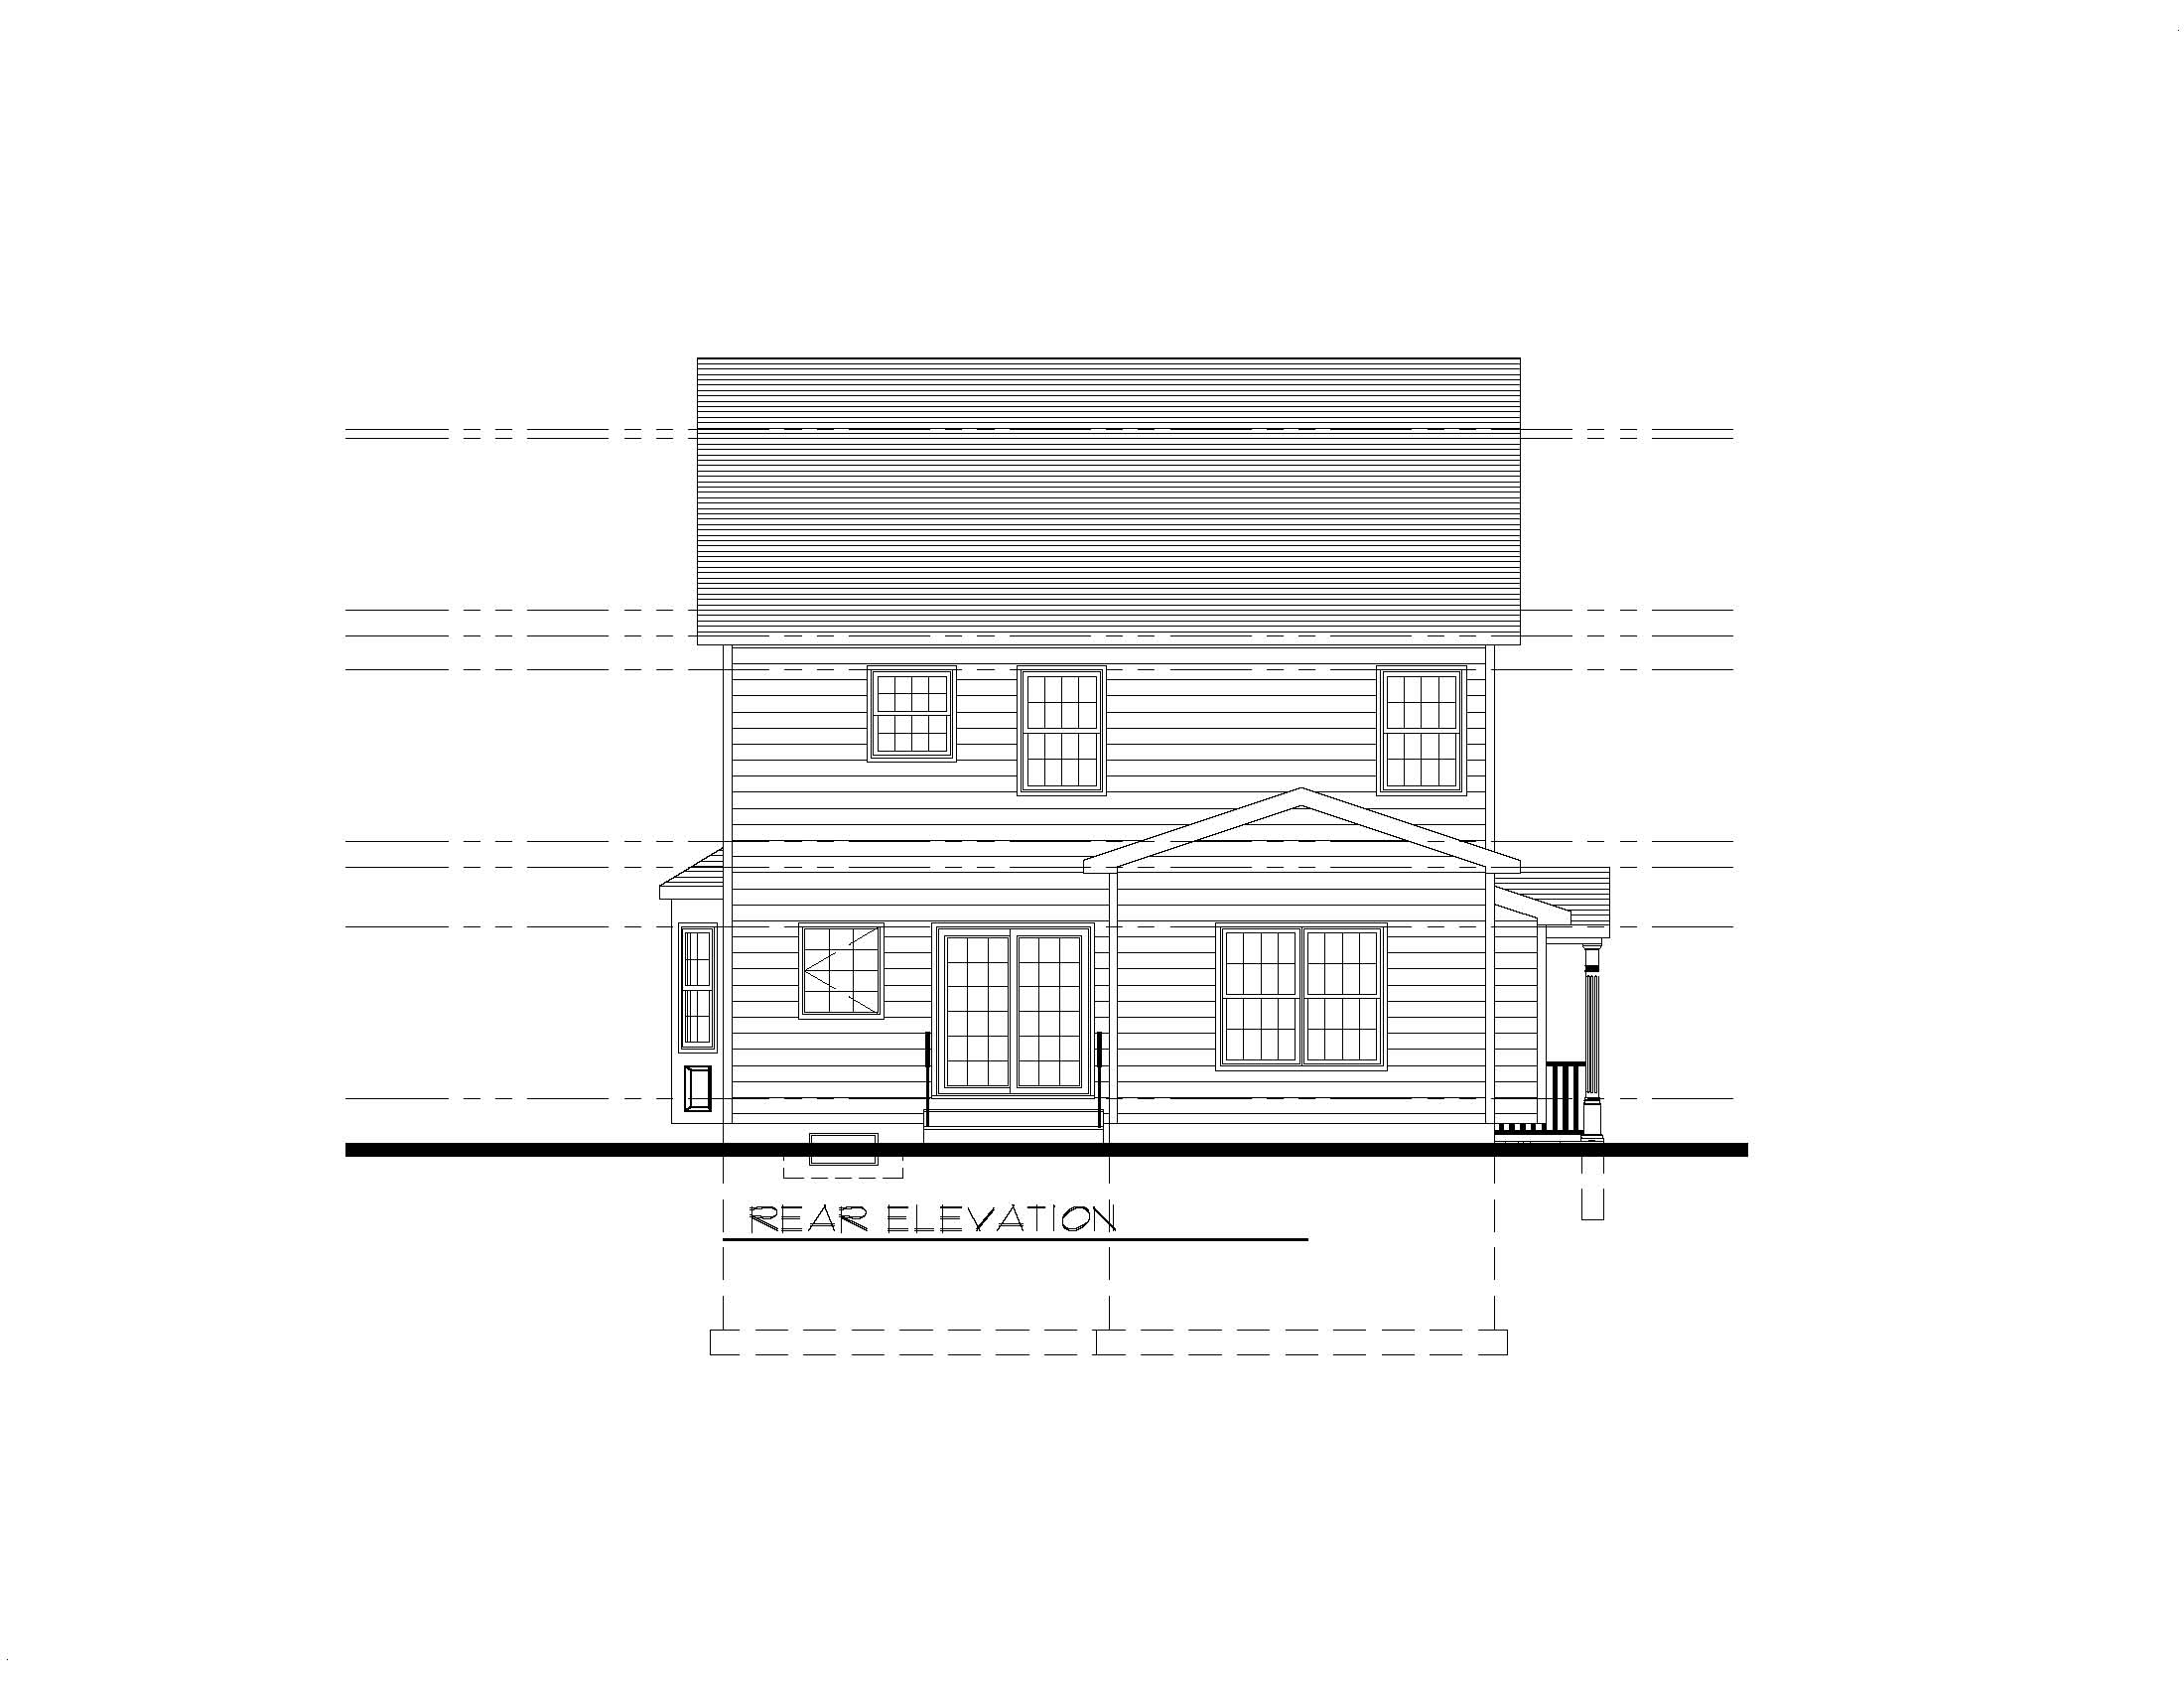 610 Cumberland Rear Elevation B&W